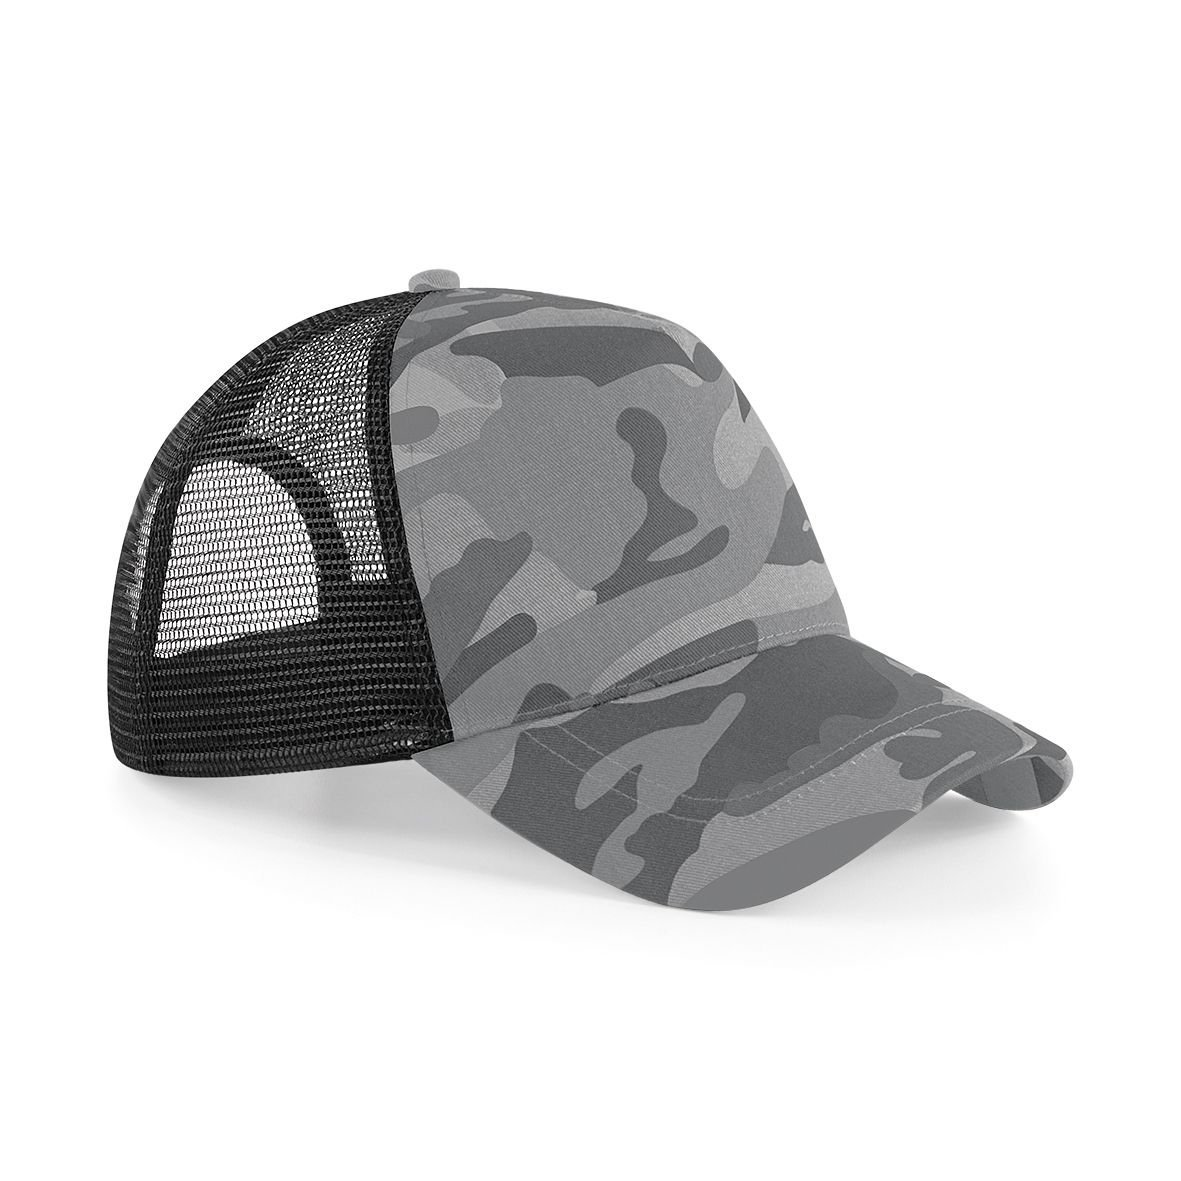 ASVP Shop. Army Baseball Cap Camo Snapback Trucker Cap Mens Ladies Fashion